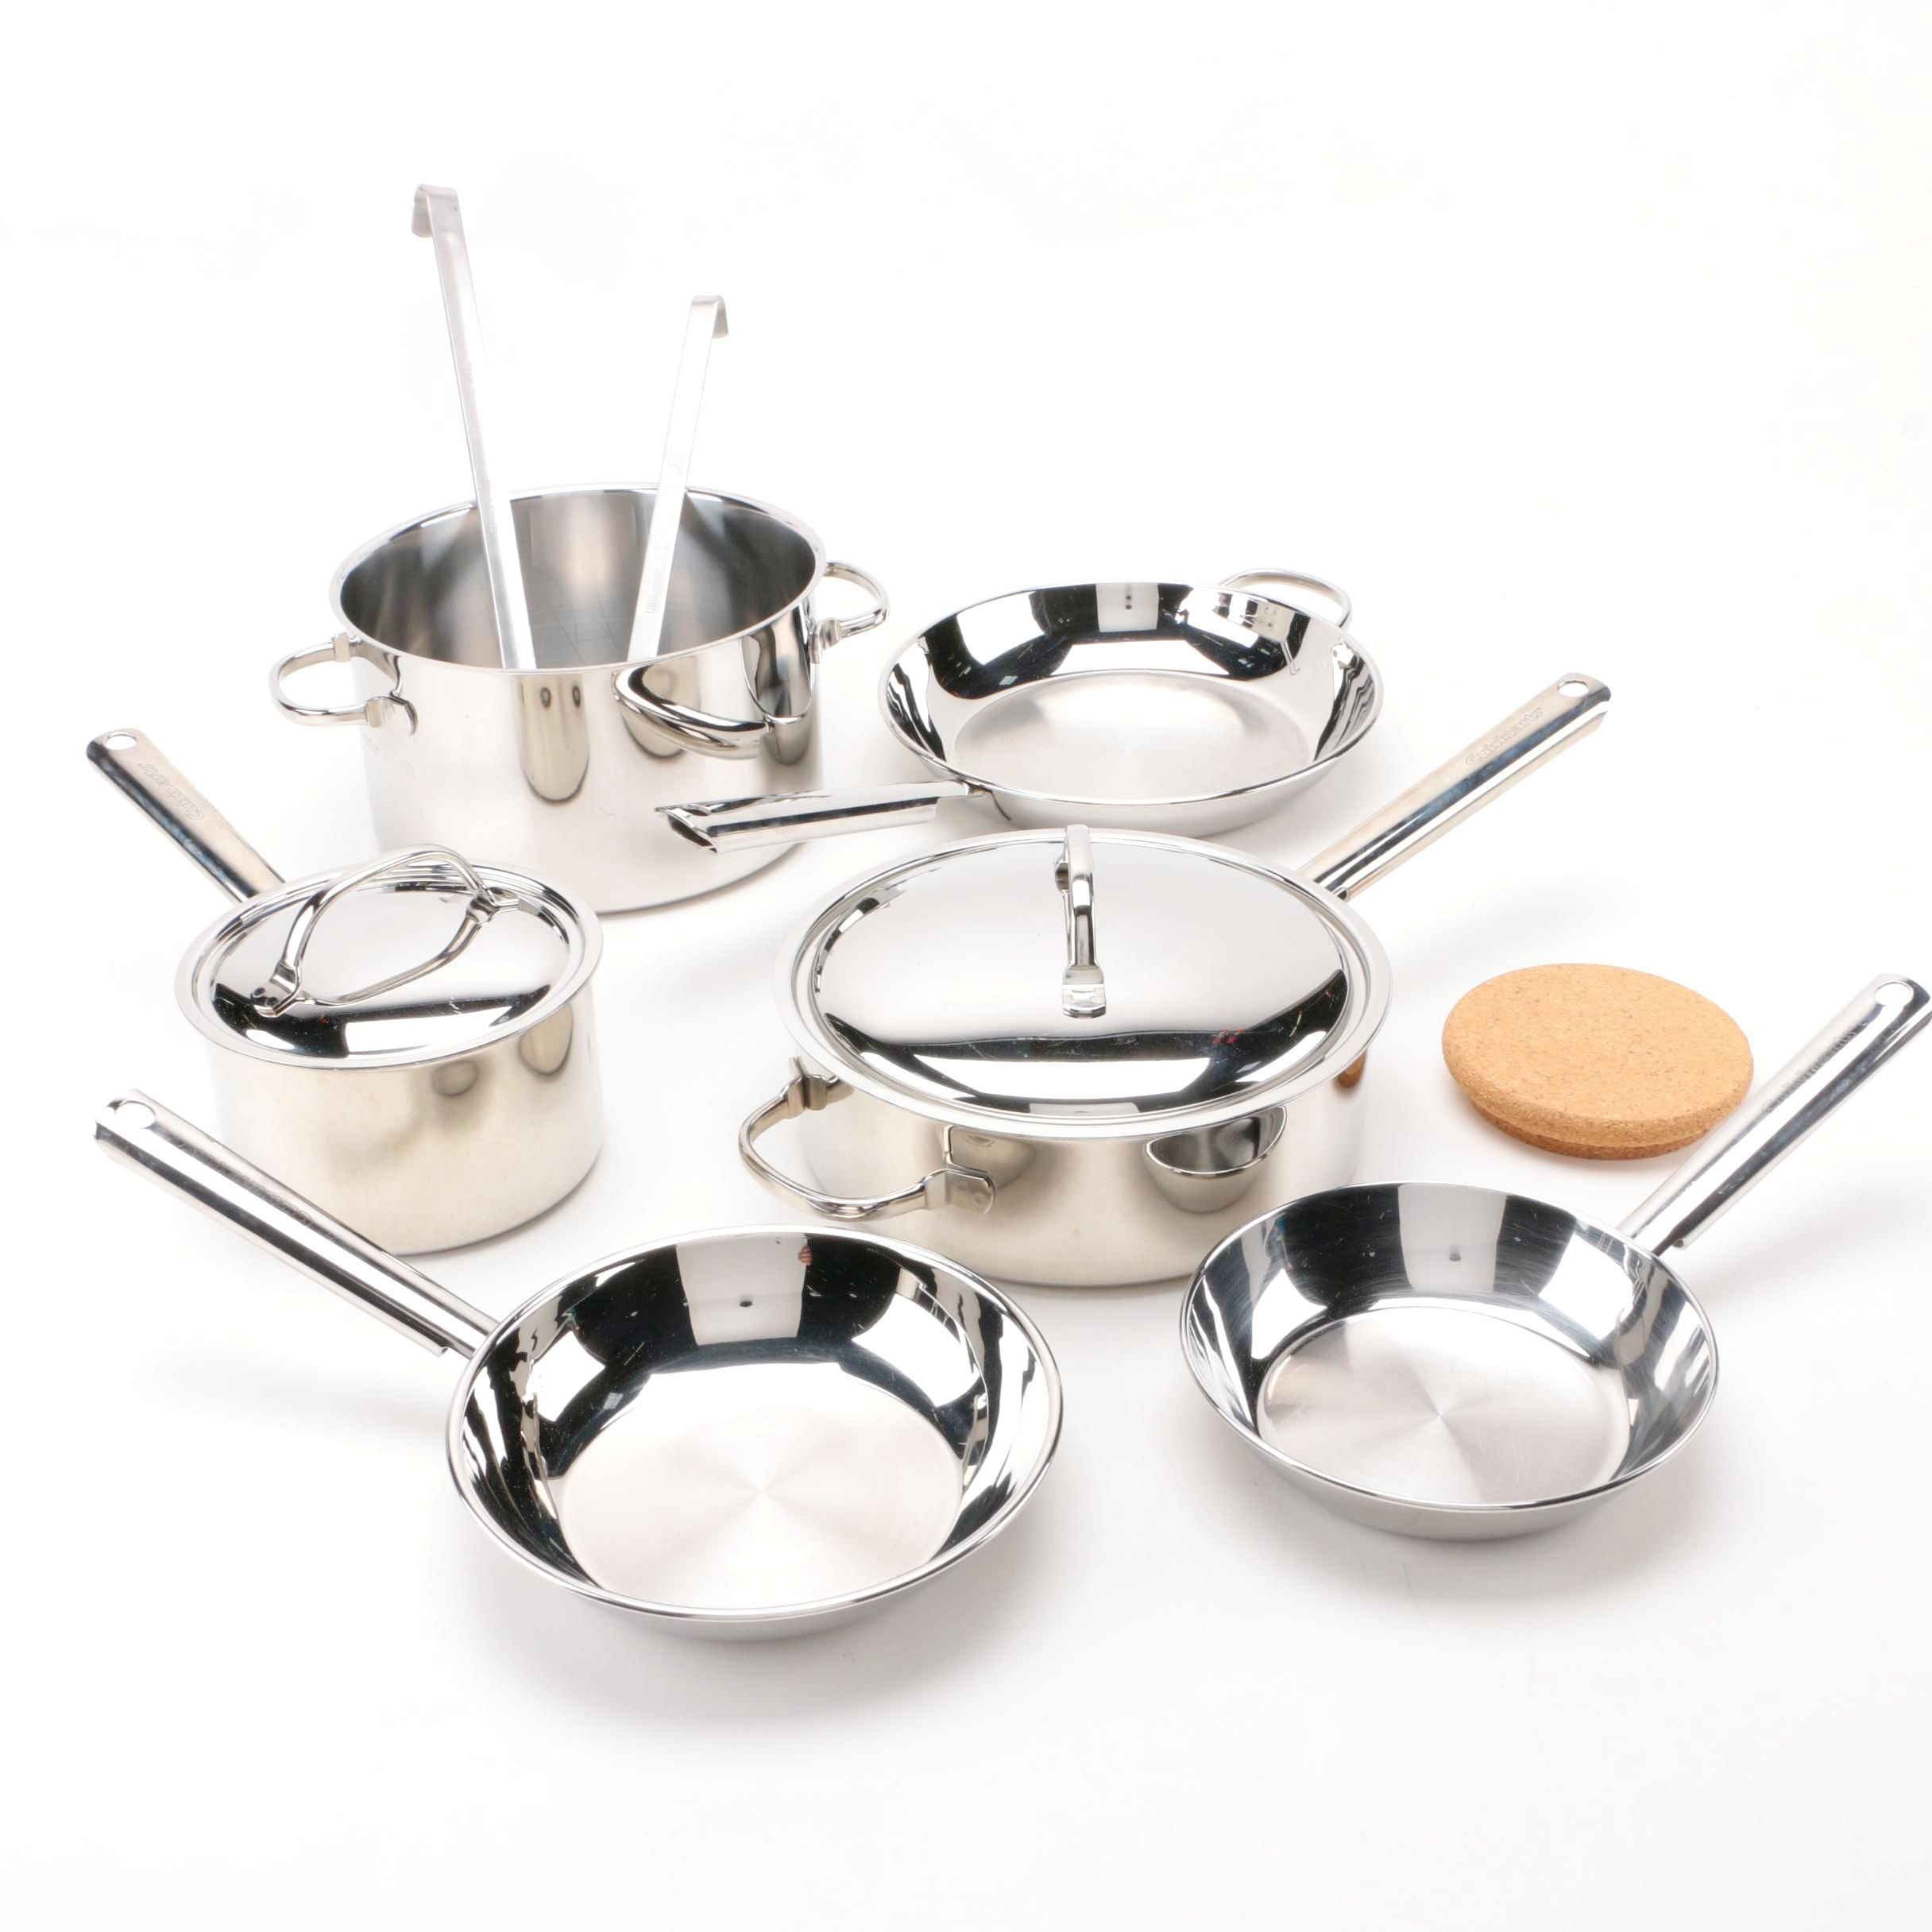 Cuisinart Stainless Steel Cookware With Ladles and Cork Holder